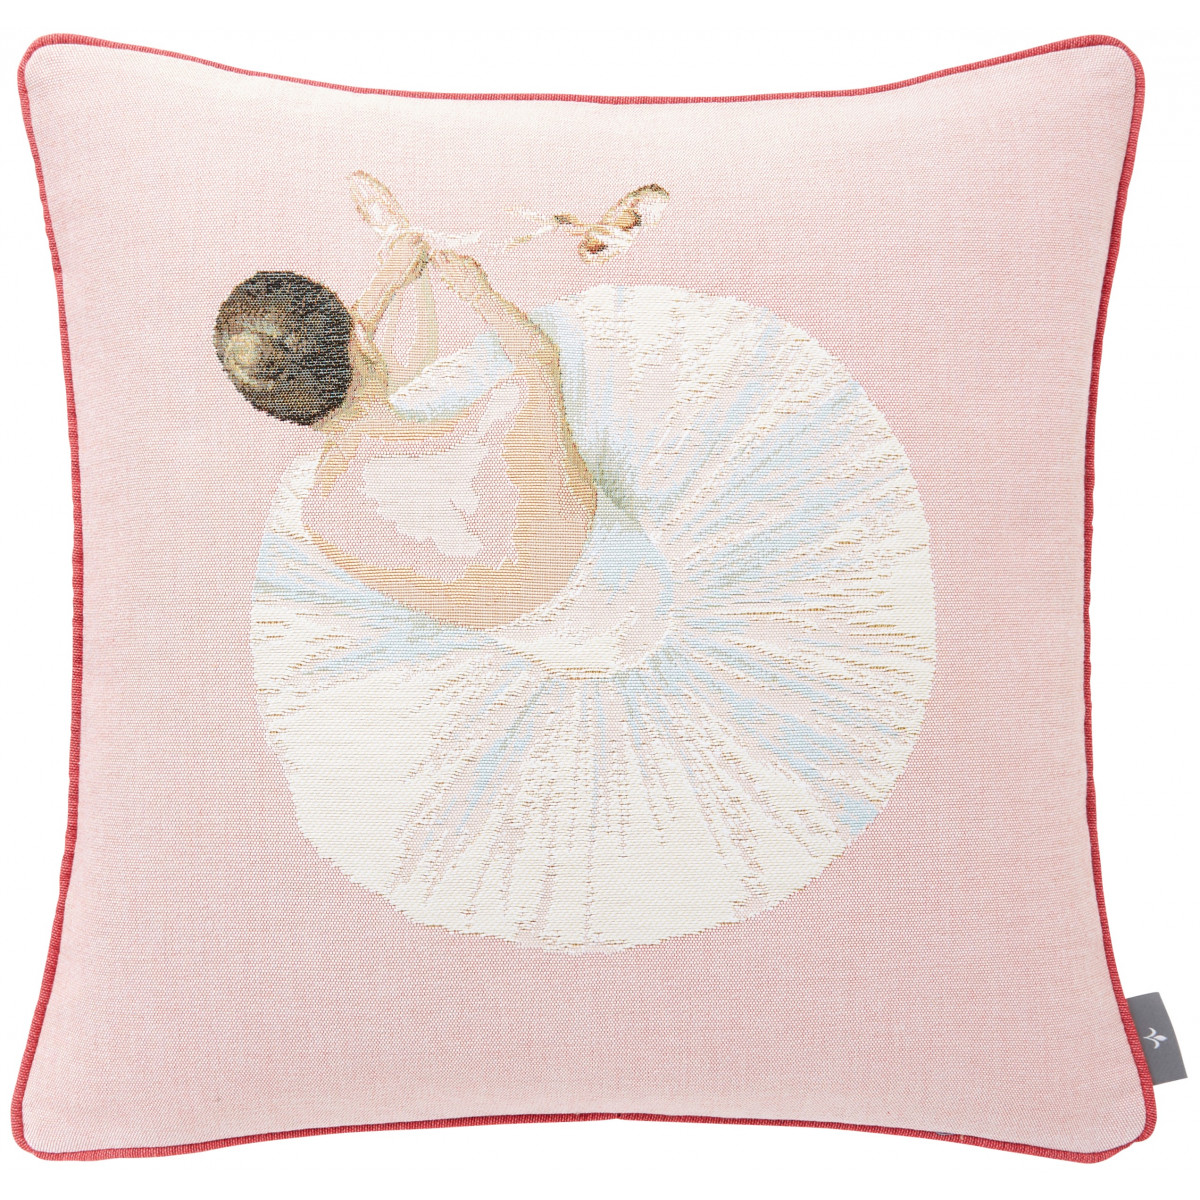 Coussin tapisserie danseuse pointe made in france rose   50x50